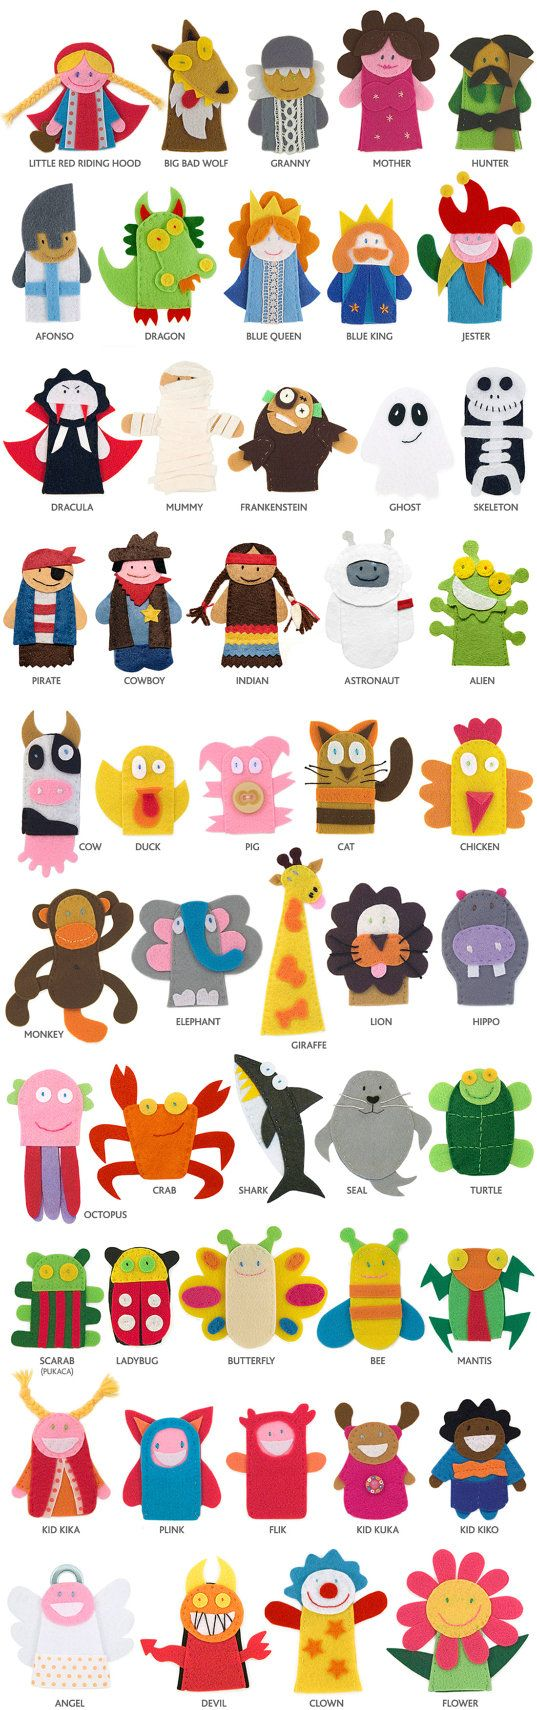 These are finger puppets but there are some good ideas for applique here